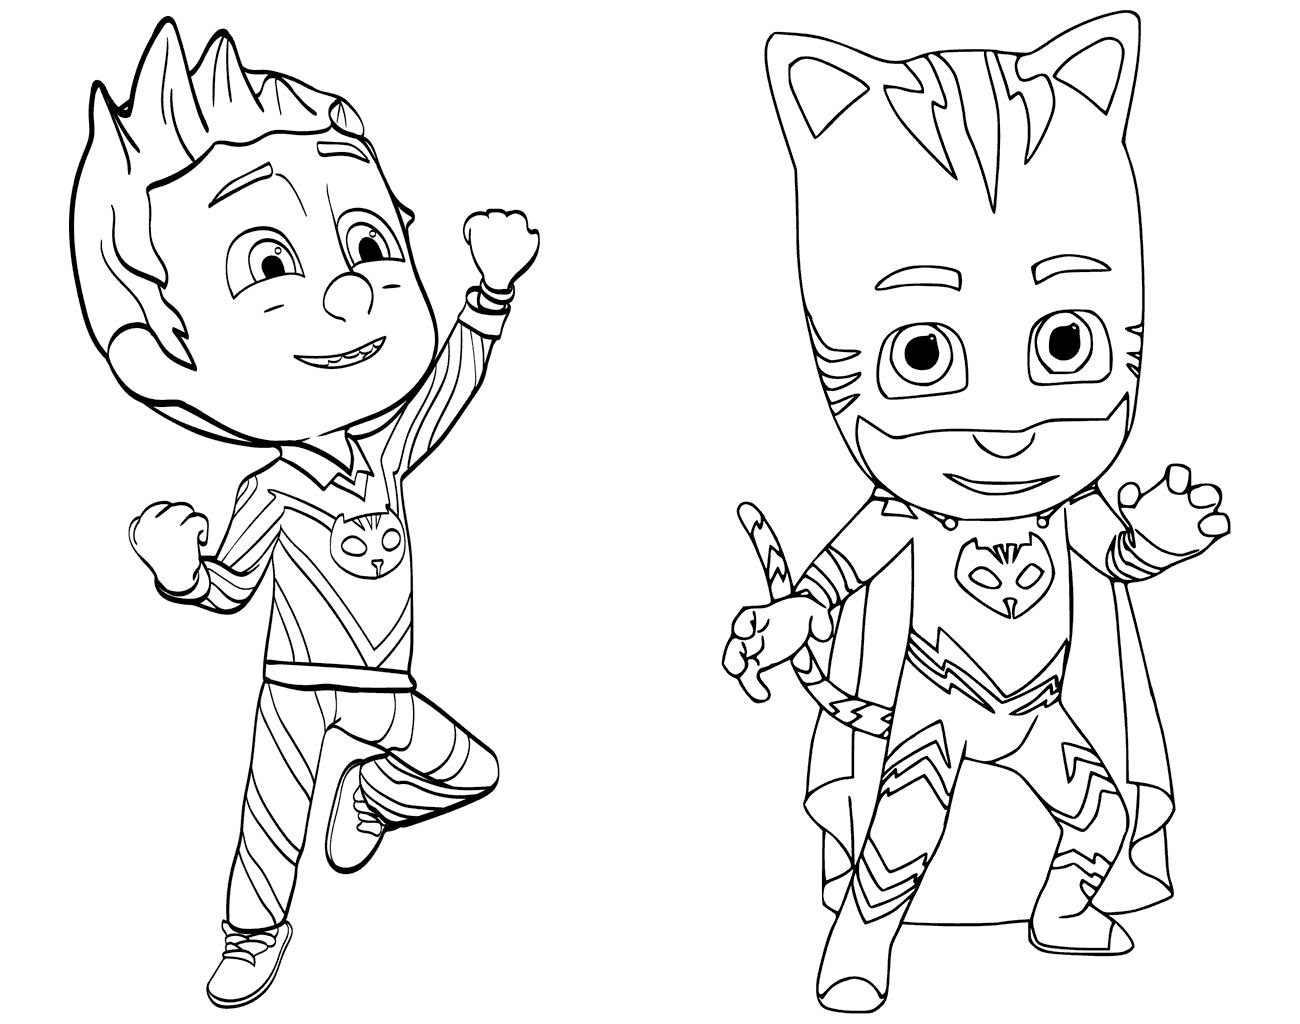 Connor AKA Catboy PJ Masks Coloring Page